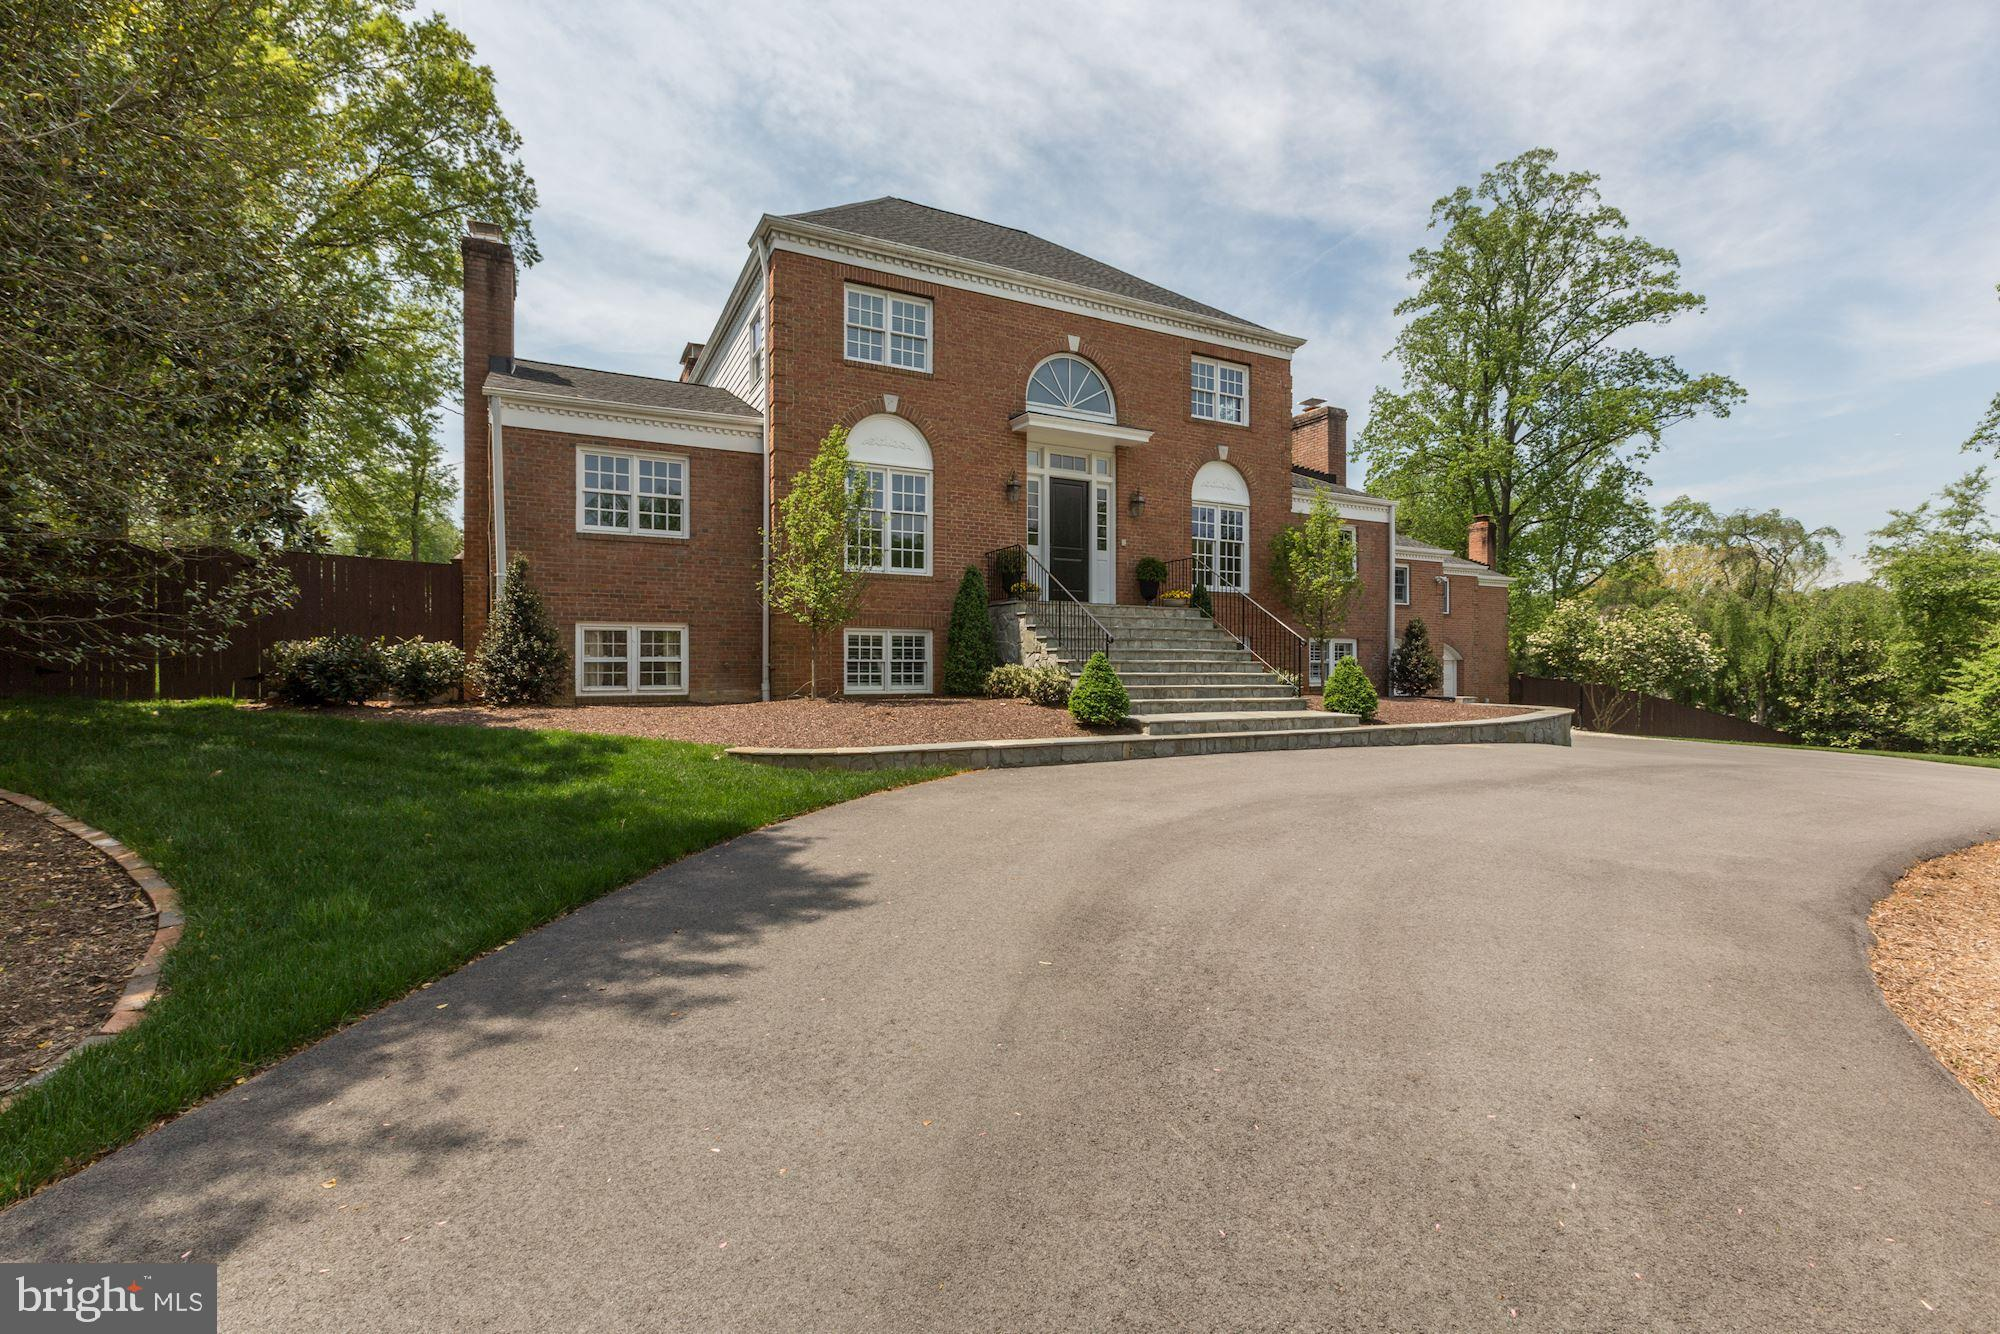 Exquisitely renovated brick colonial in one of the most desirable locations in McLean, just one stop